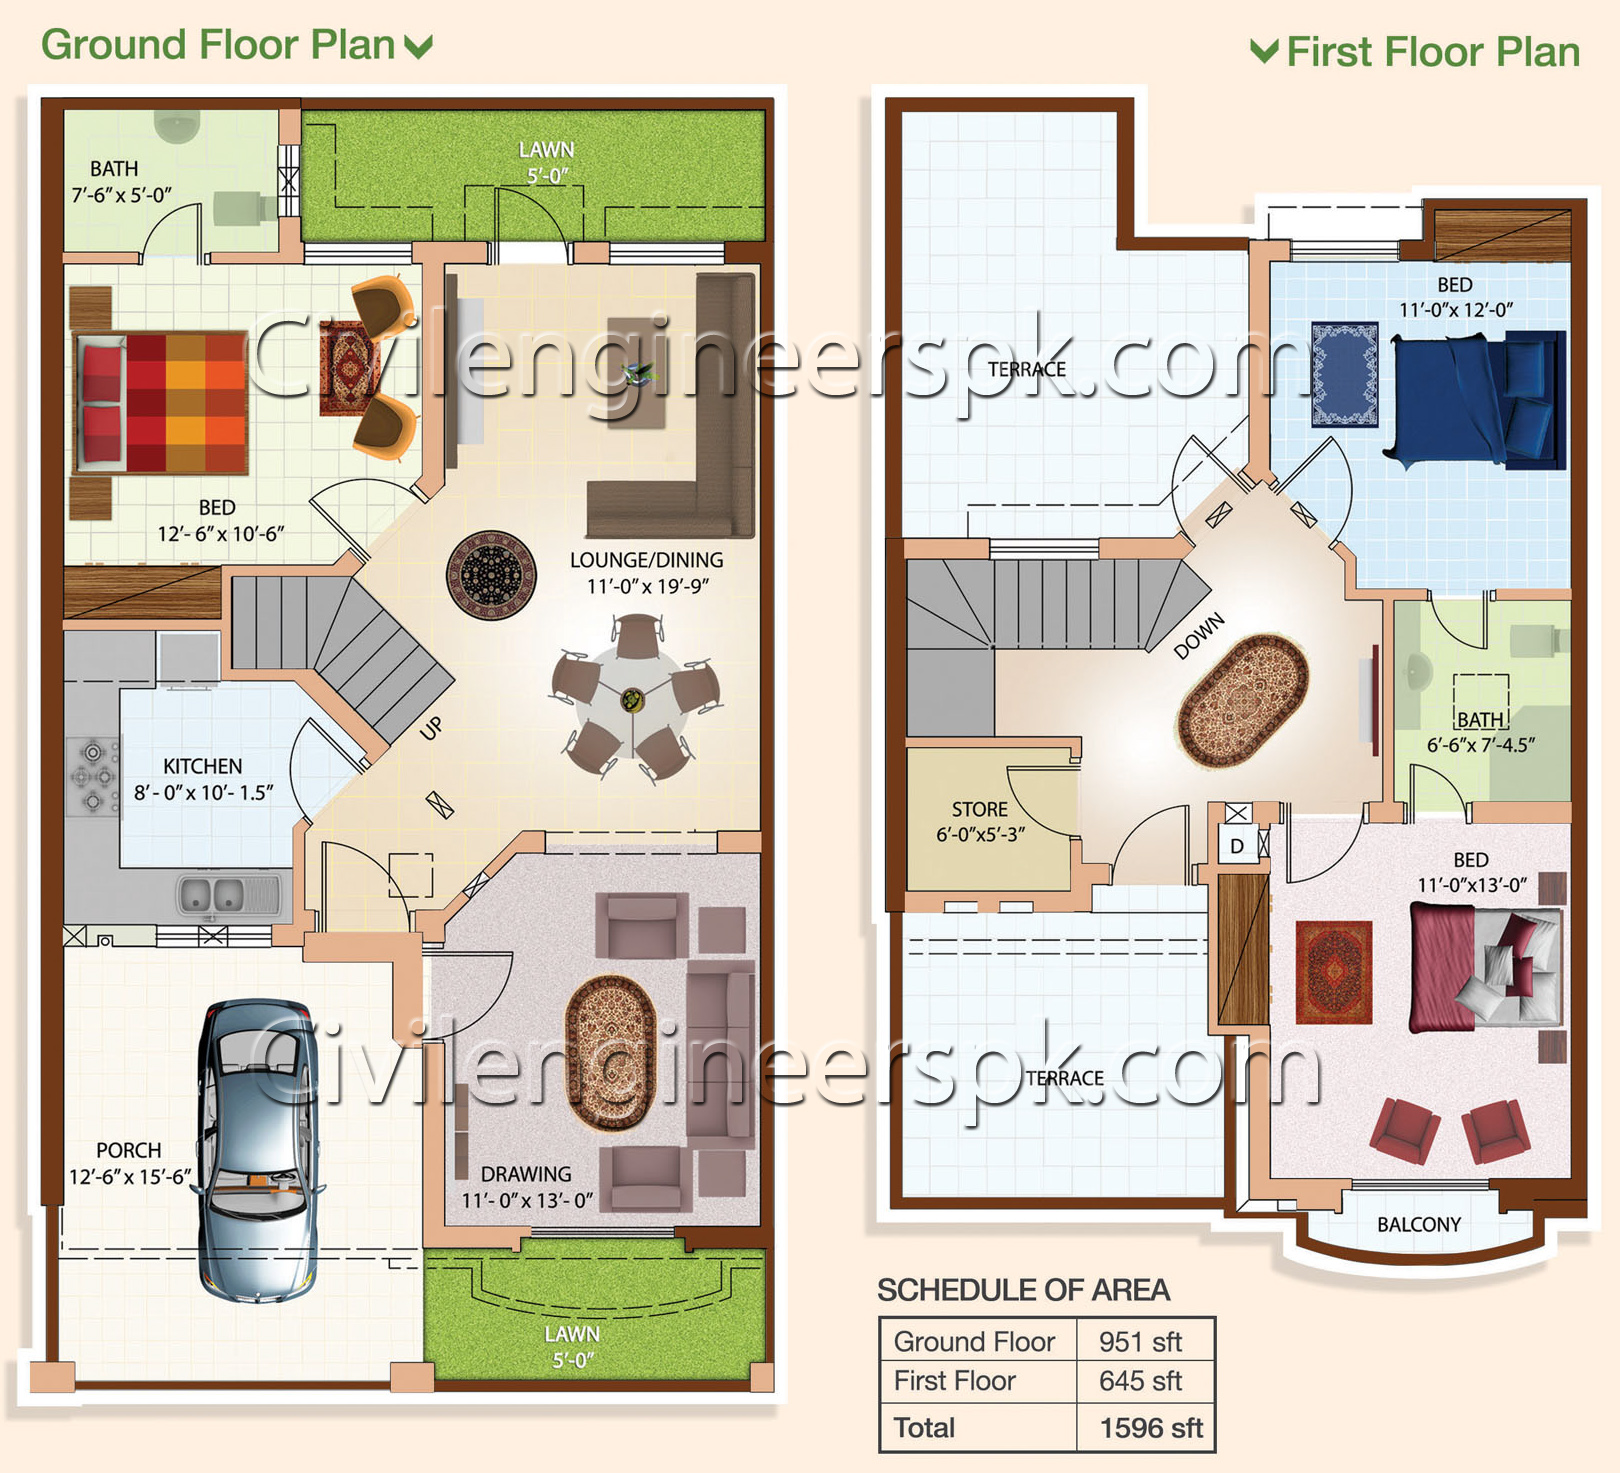 Home Design For 10 Marla: Civil Engineers PK